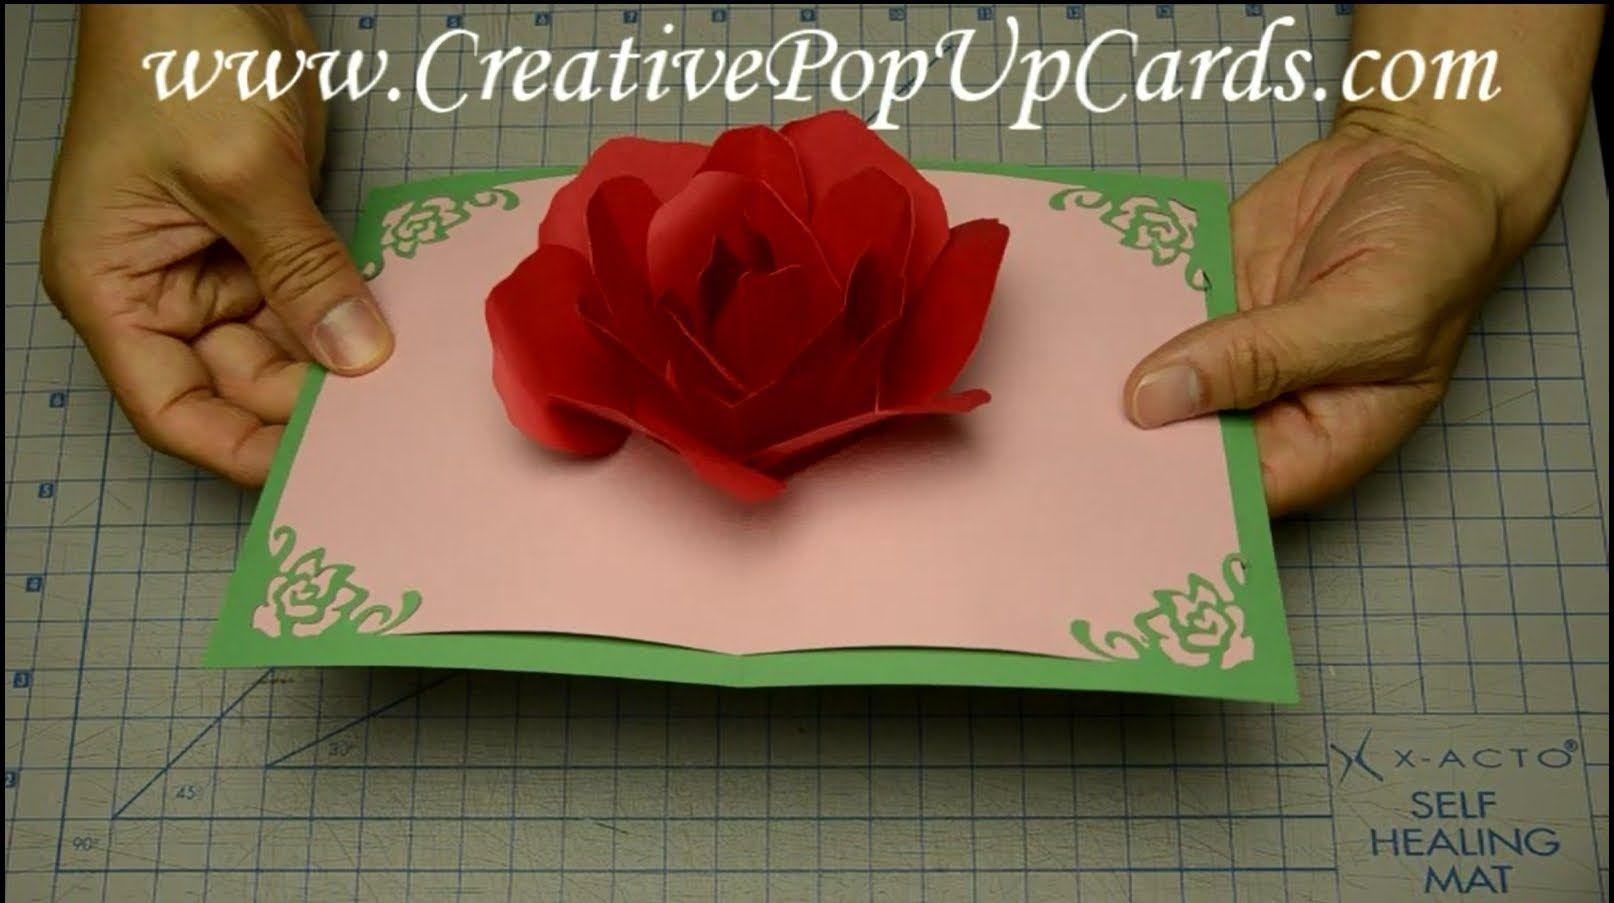 Creativepopupcards Rose Please Visit My Website For